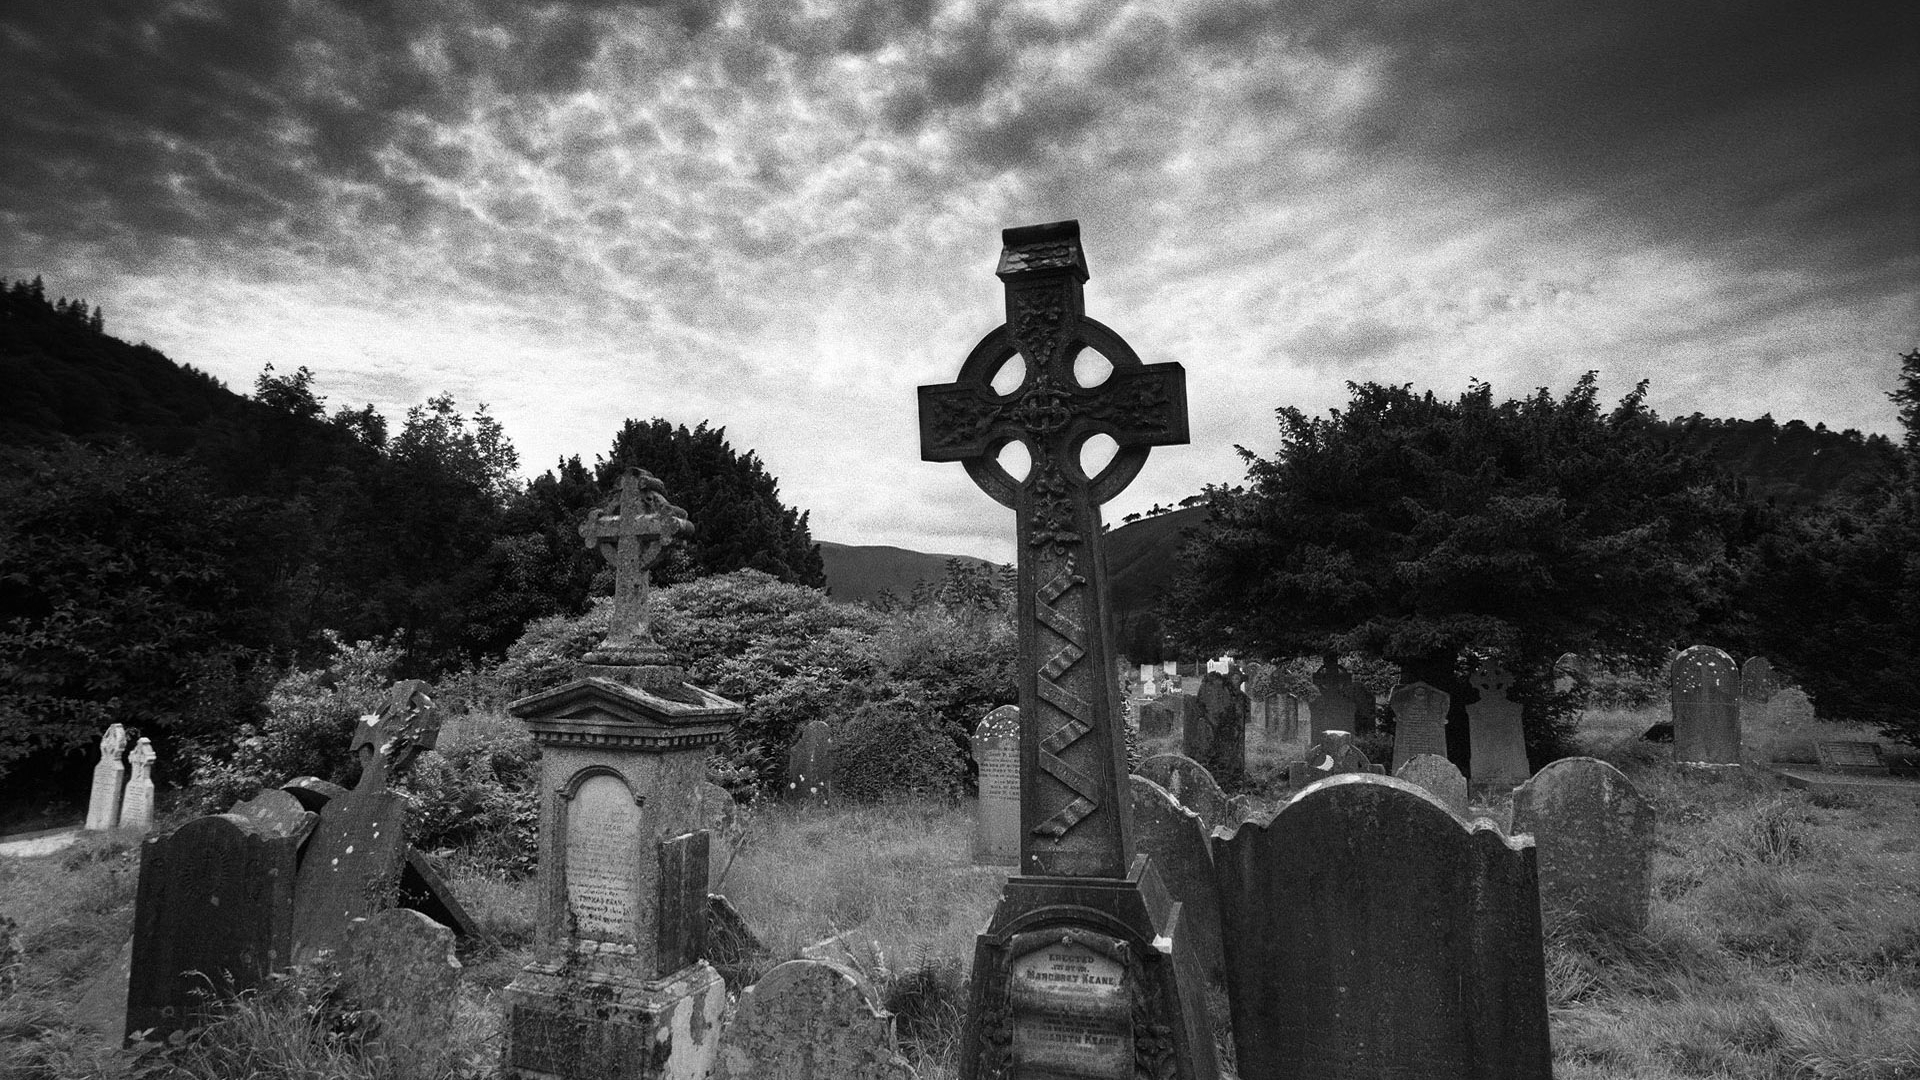 Spooky Old Graveyard Black And White Photography